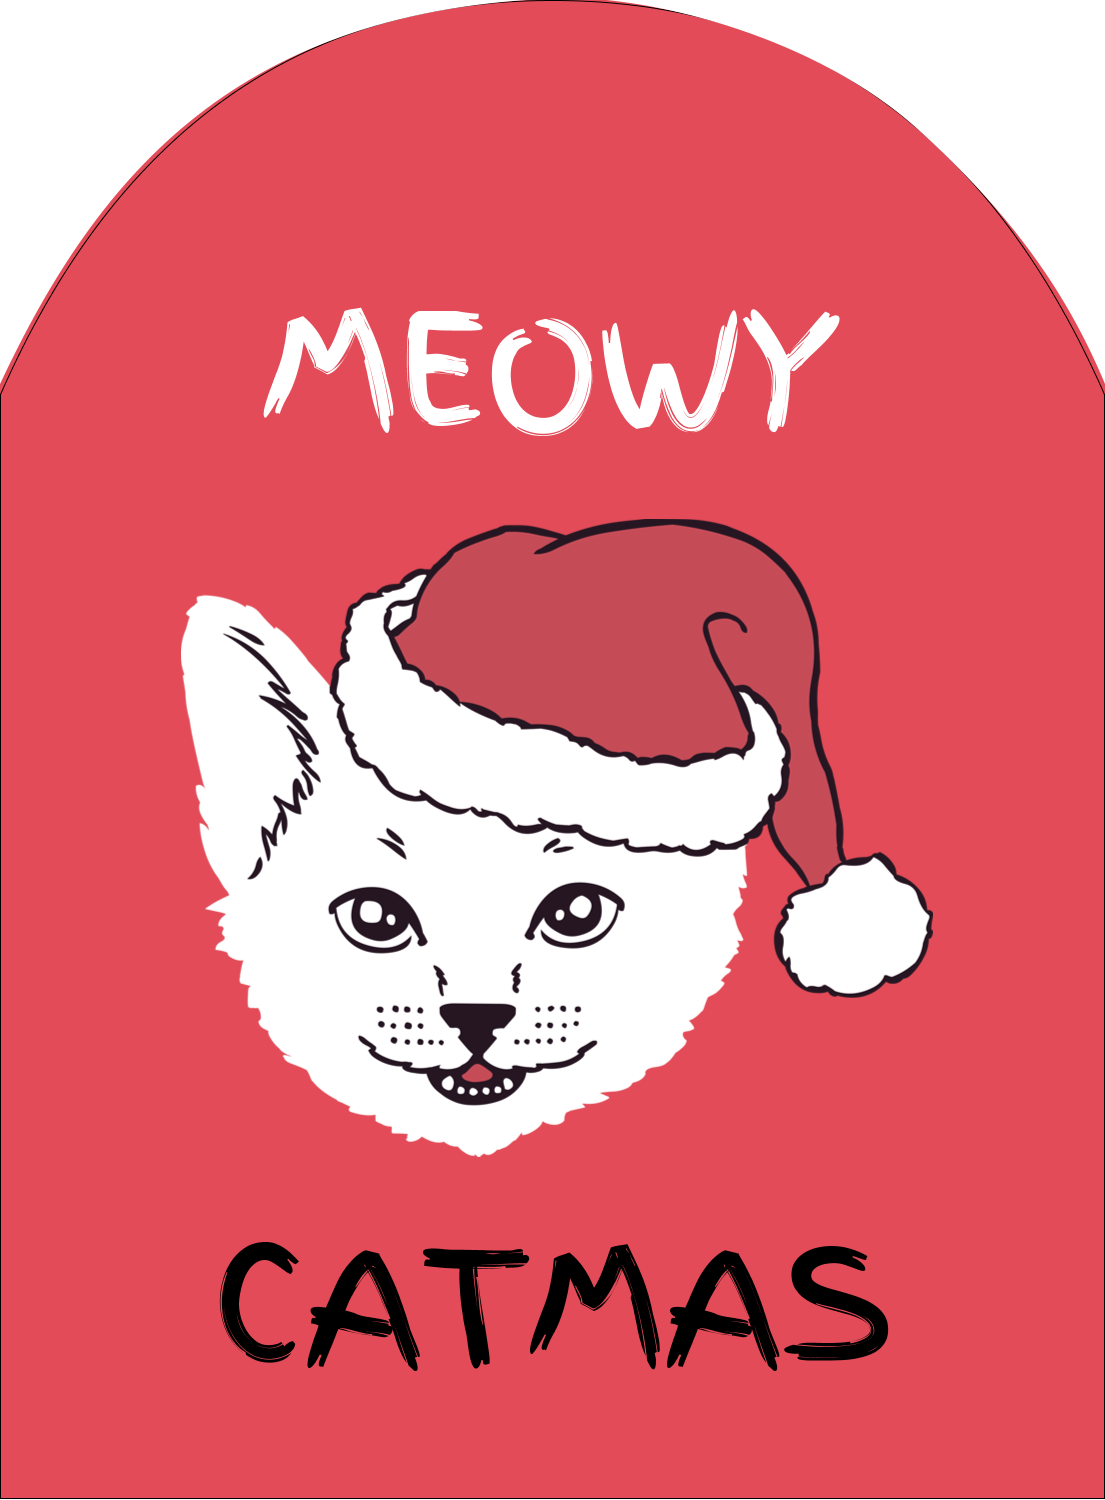 "4¾"" x 3½"" Arched Label - Catmas Meowy"